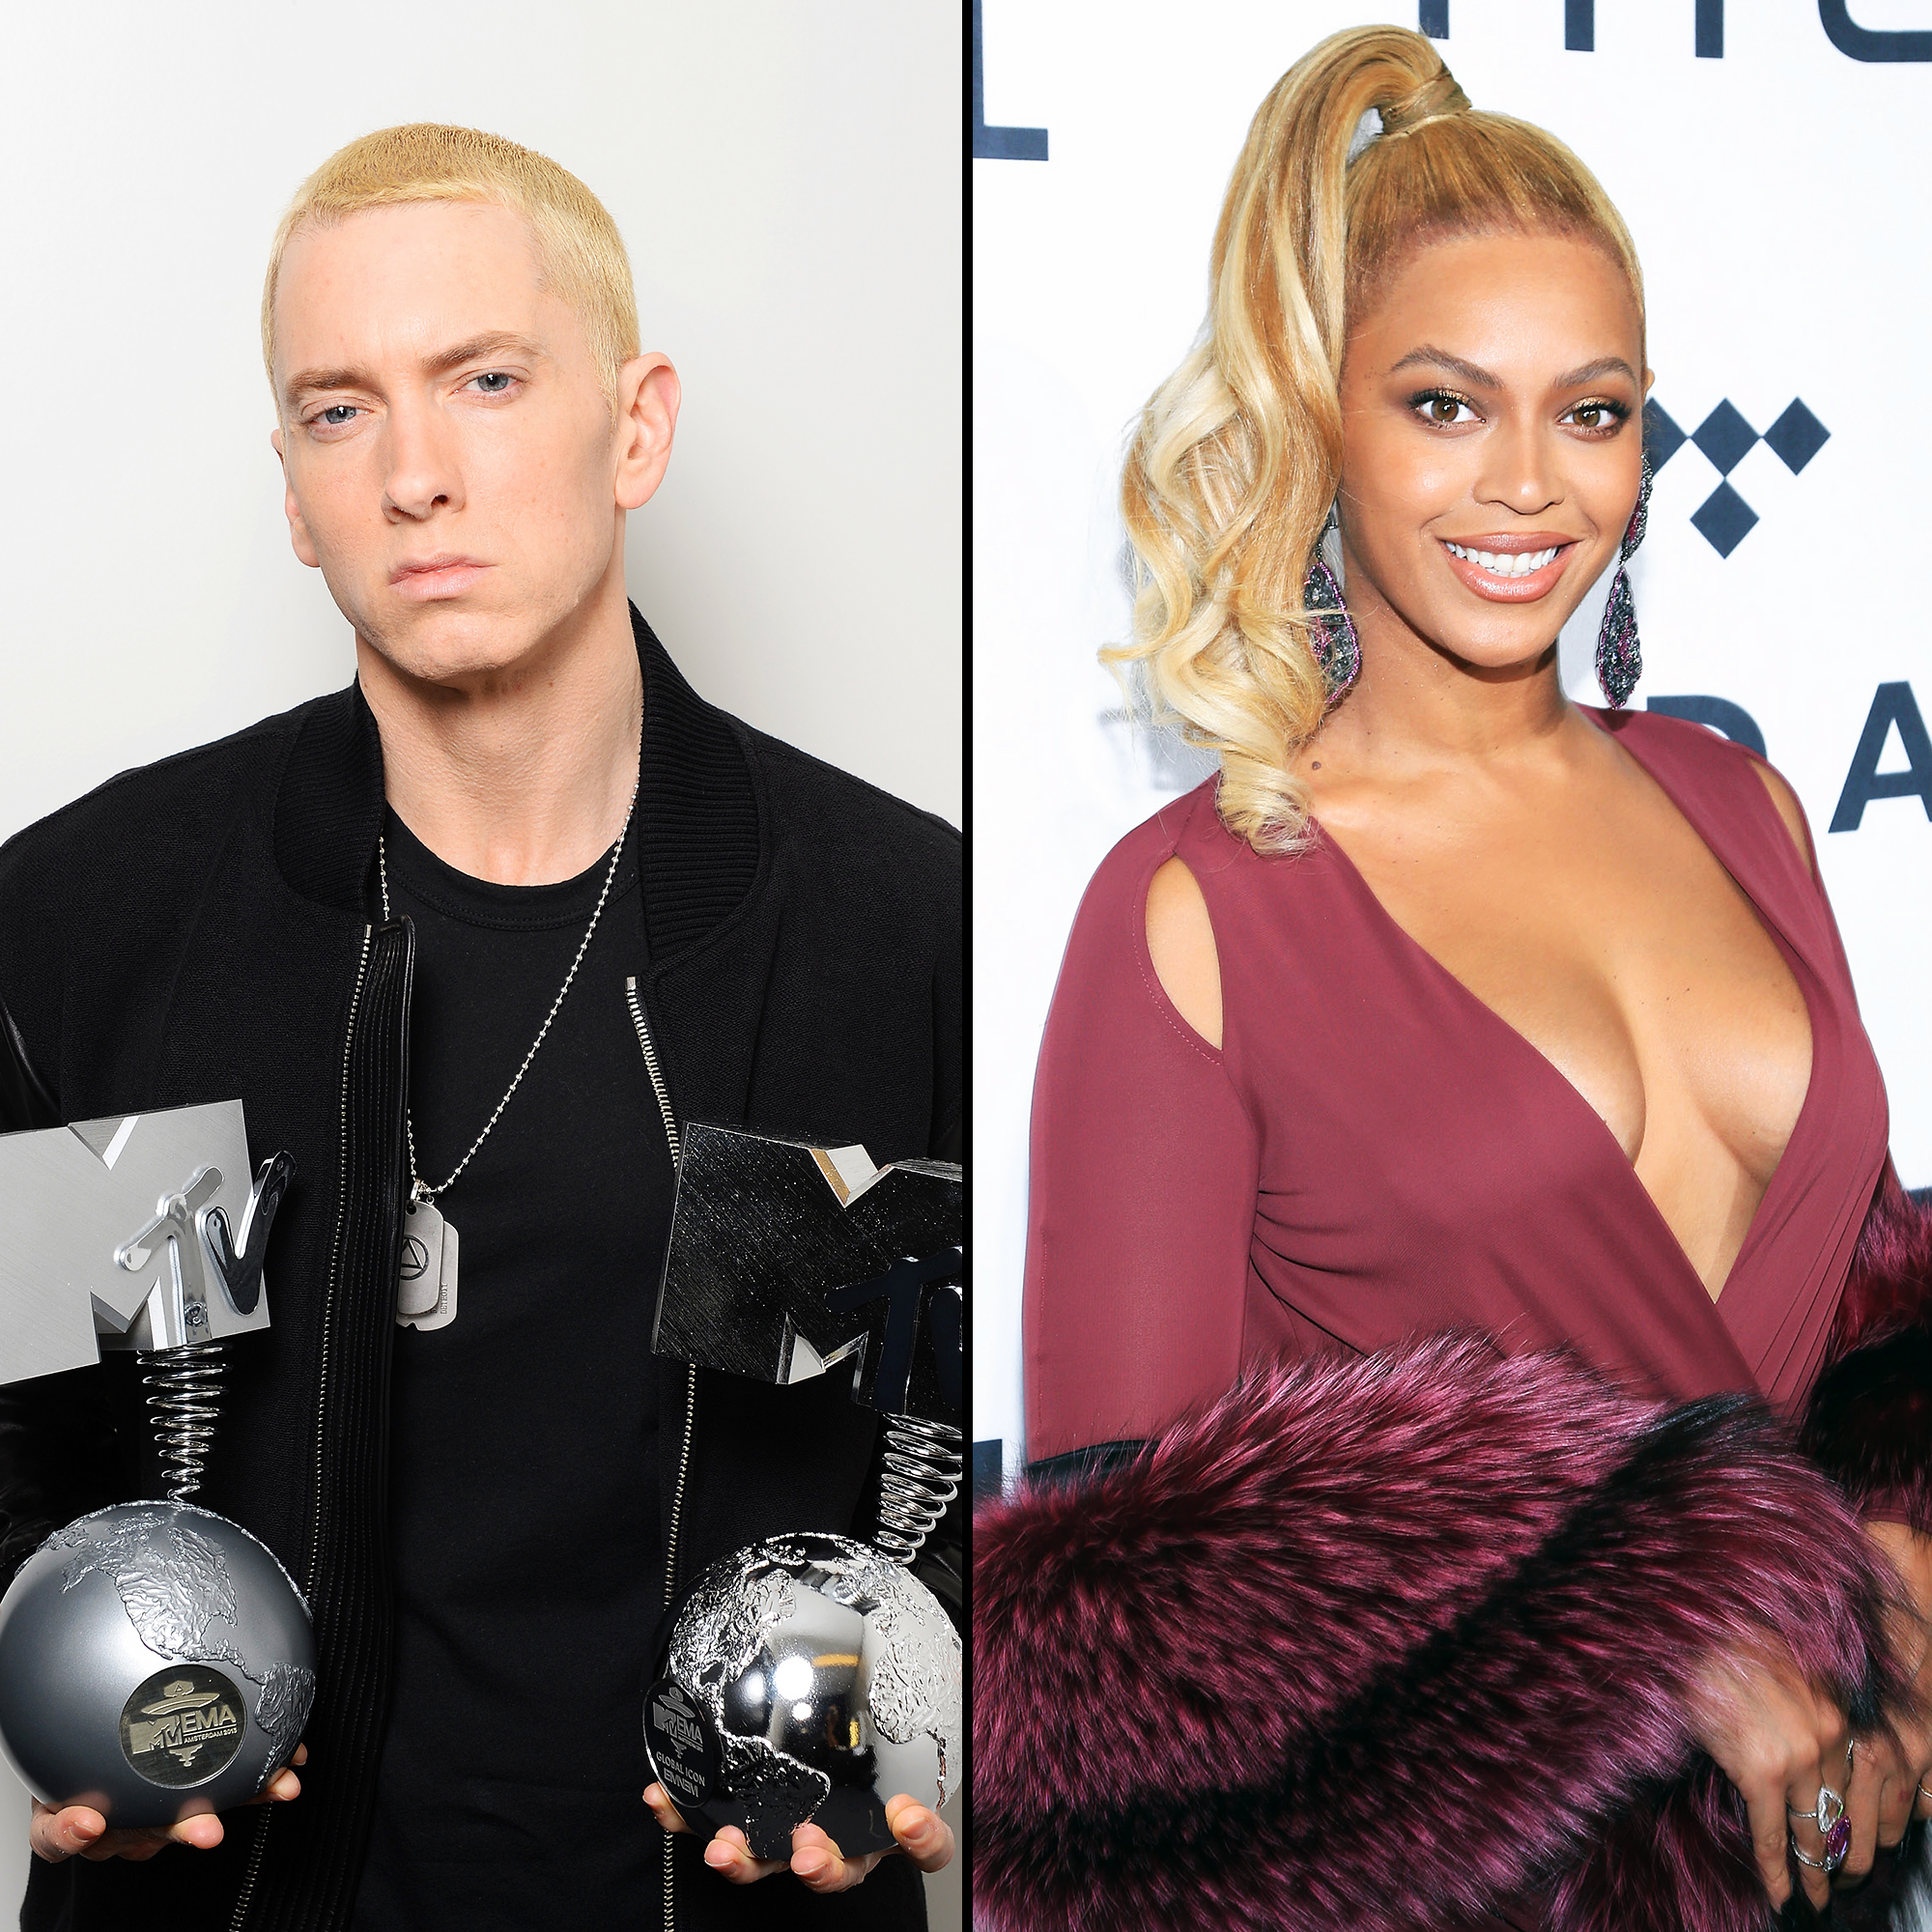 Eminem Drops New Single 'Walk on Water' Featuring Beyonce